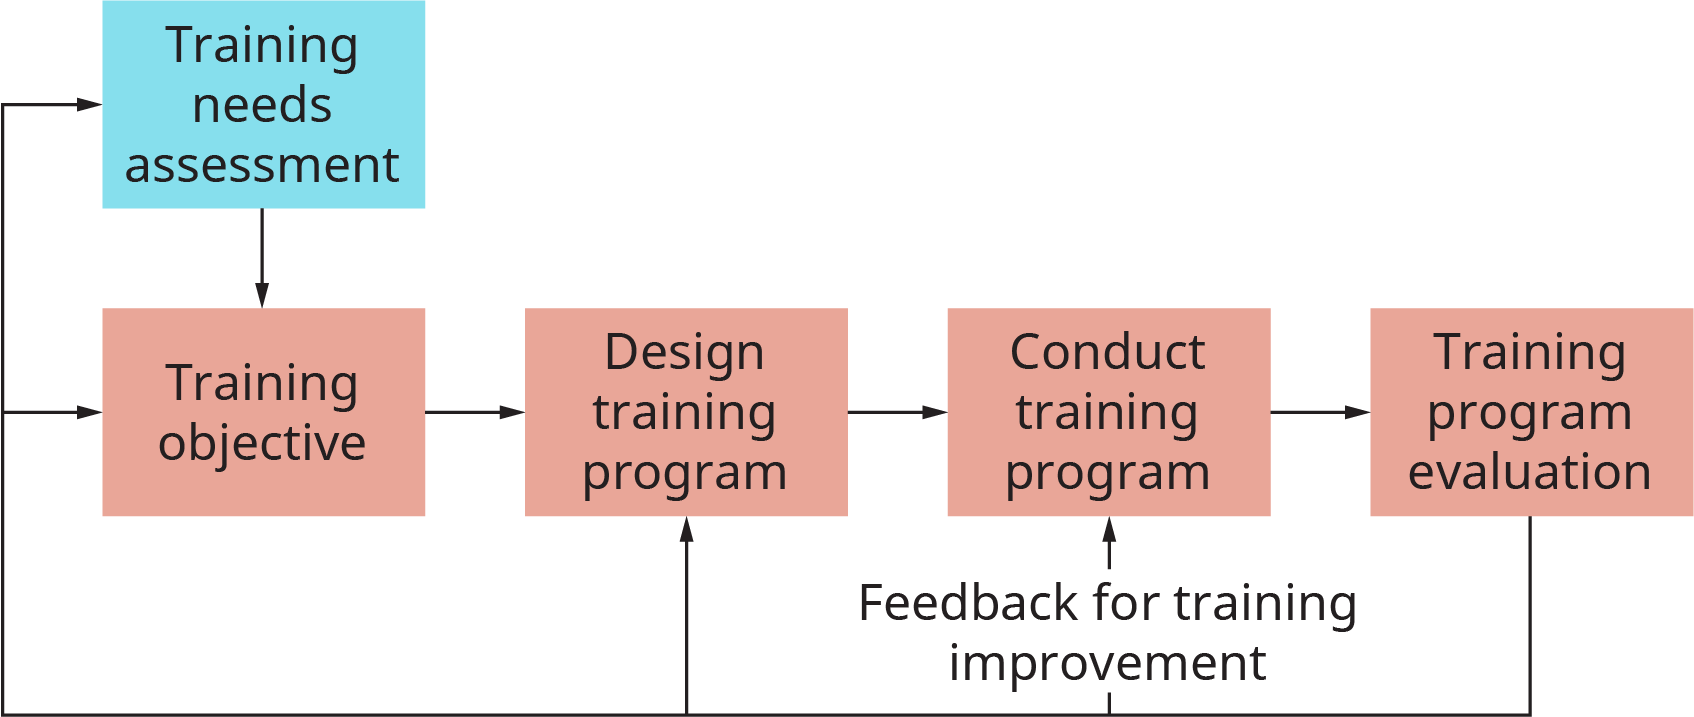 The chart starts with a box labeled training needs and assessment. This flows into training objective. This flows into design training program. This flows into conduct training program. This flows into training program evaluation. From here, the process flows back to each of the previous processes, with a note at the conduct training step that reads, feedback for training improvement.